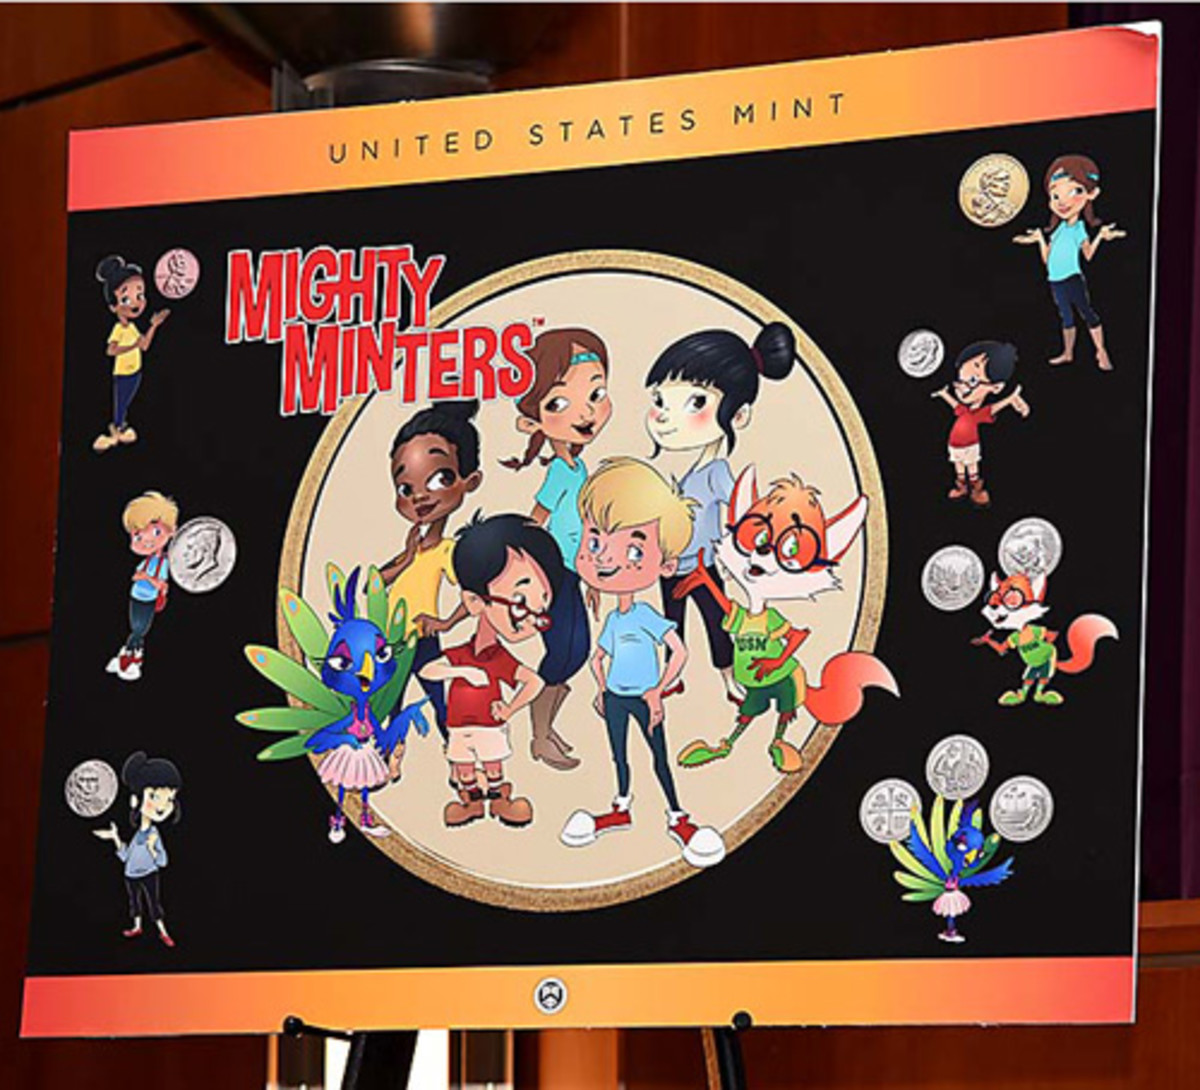 Can The Mighty Minters™️ rescue an aging numismatic hobby? The characters will be featured beginning in 2019 on a new line of youth products. (U.S. Mint photo by Jill Westeyn.)